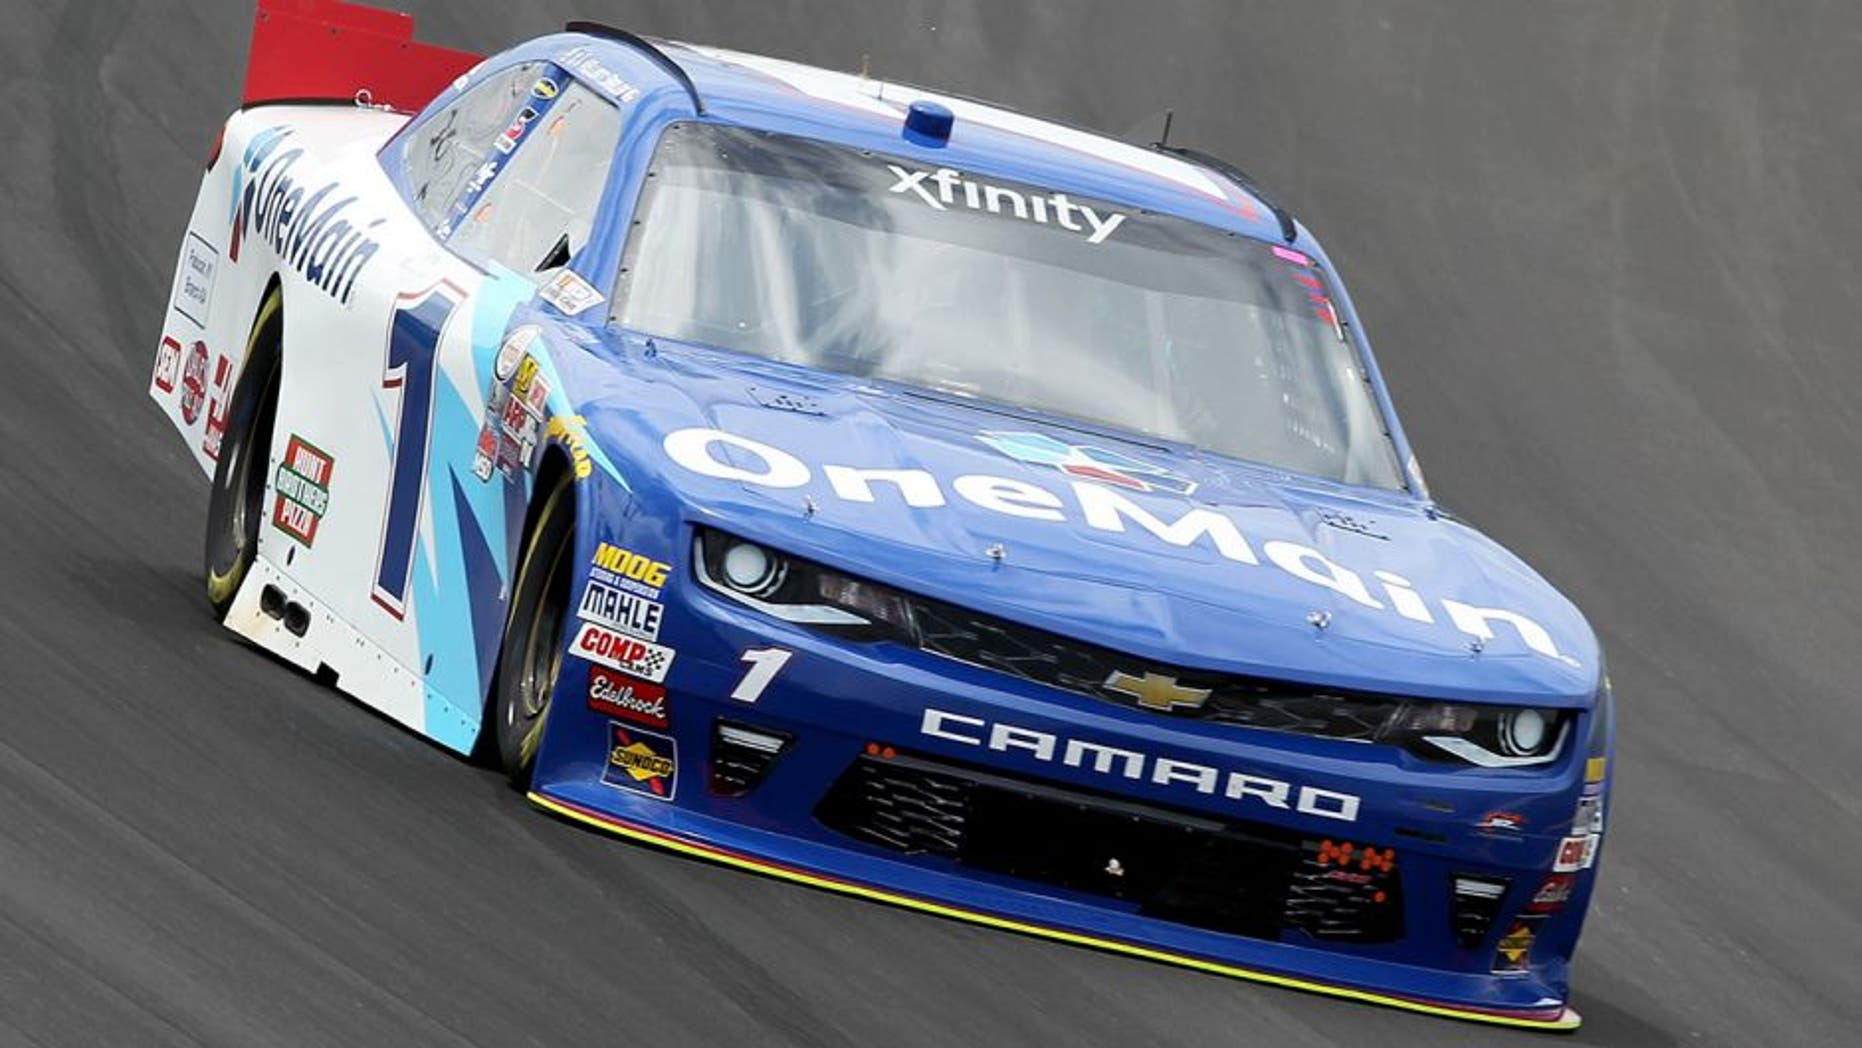 SPARTA, KY - JULY 07: Elliott Sadler, driver of the #1 OneMain Chevrolet, practices for the NASCAR XFINITY Series Alsco 300 at Kentucky Speedway on July 7, 2016 in Sparta, Kentucky. (Photo by Dylan Buell/Getty Images)